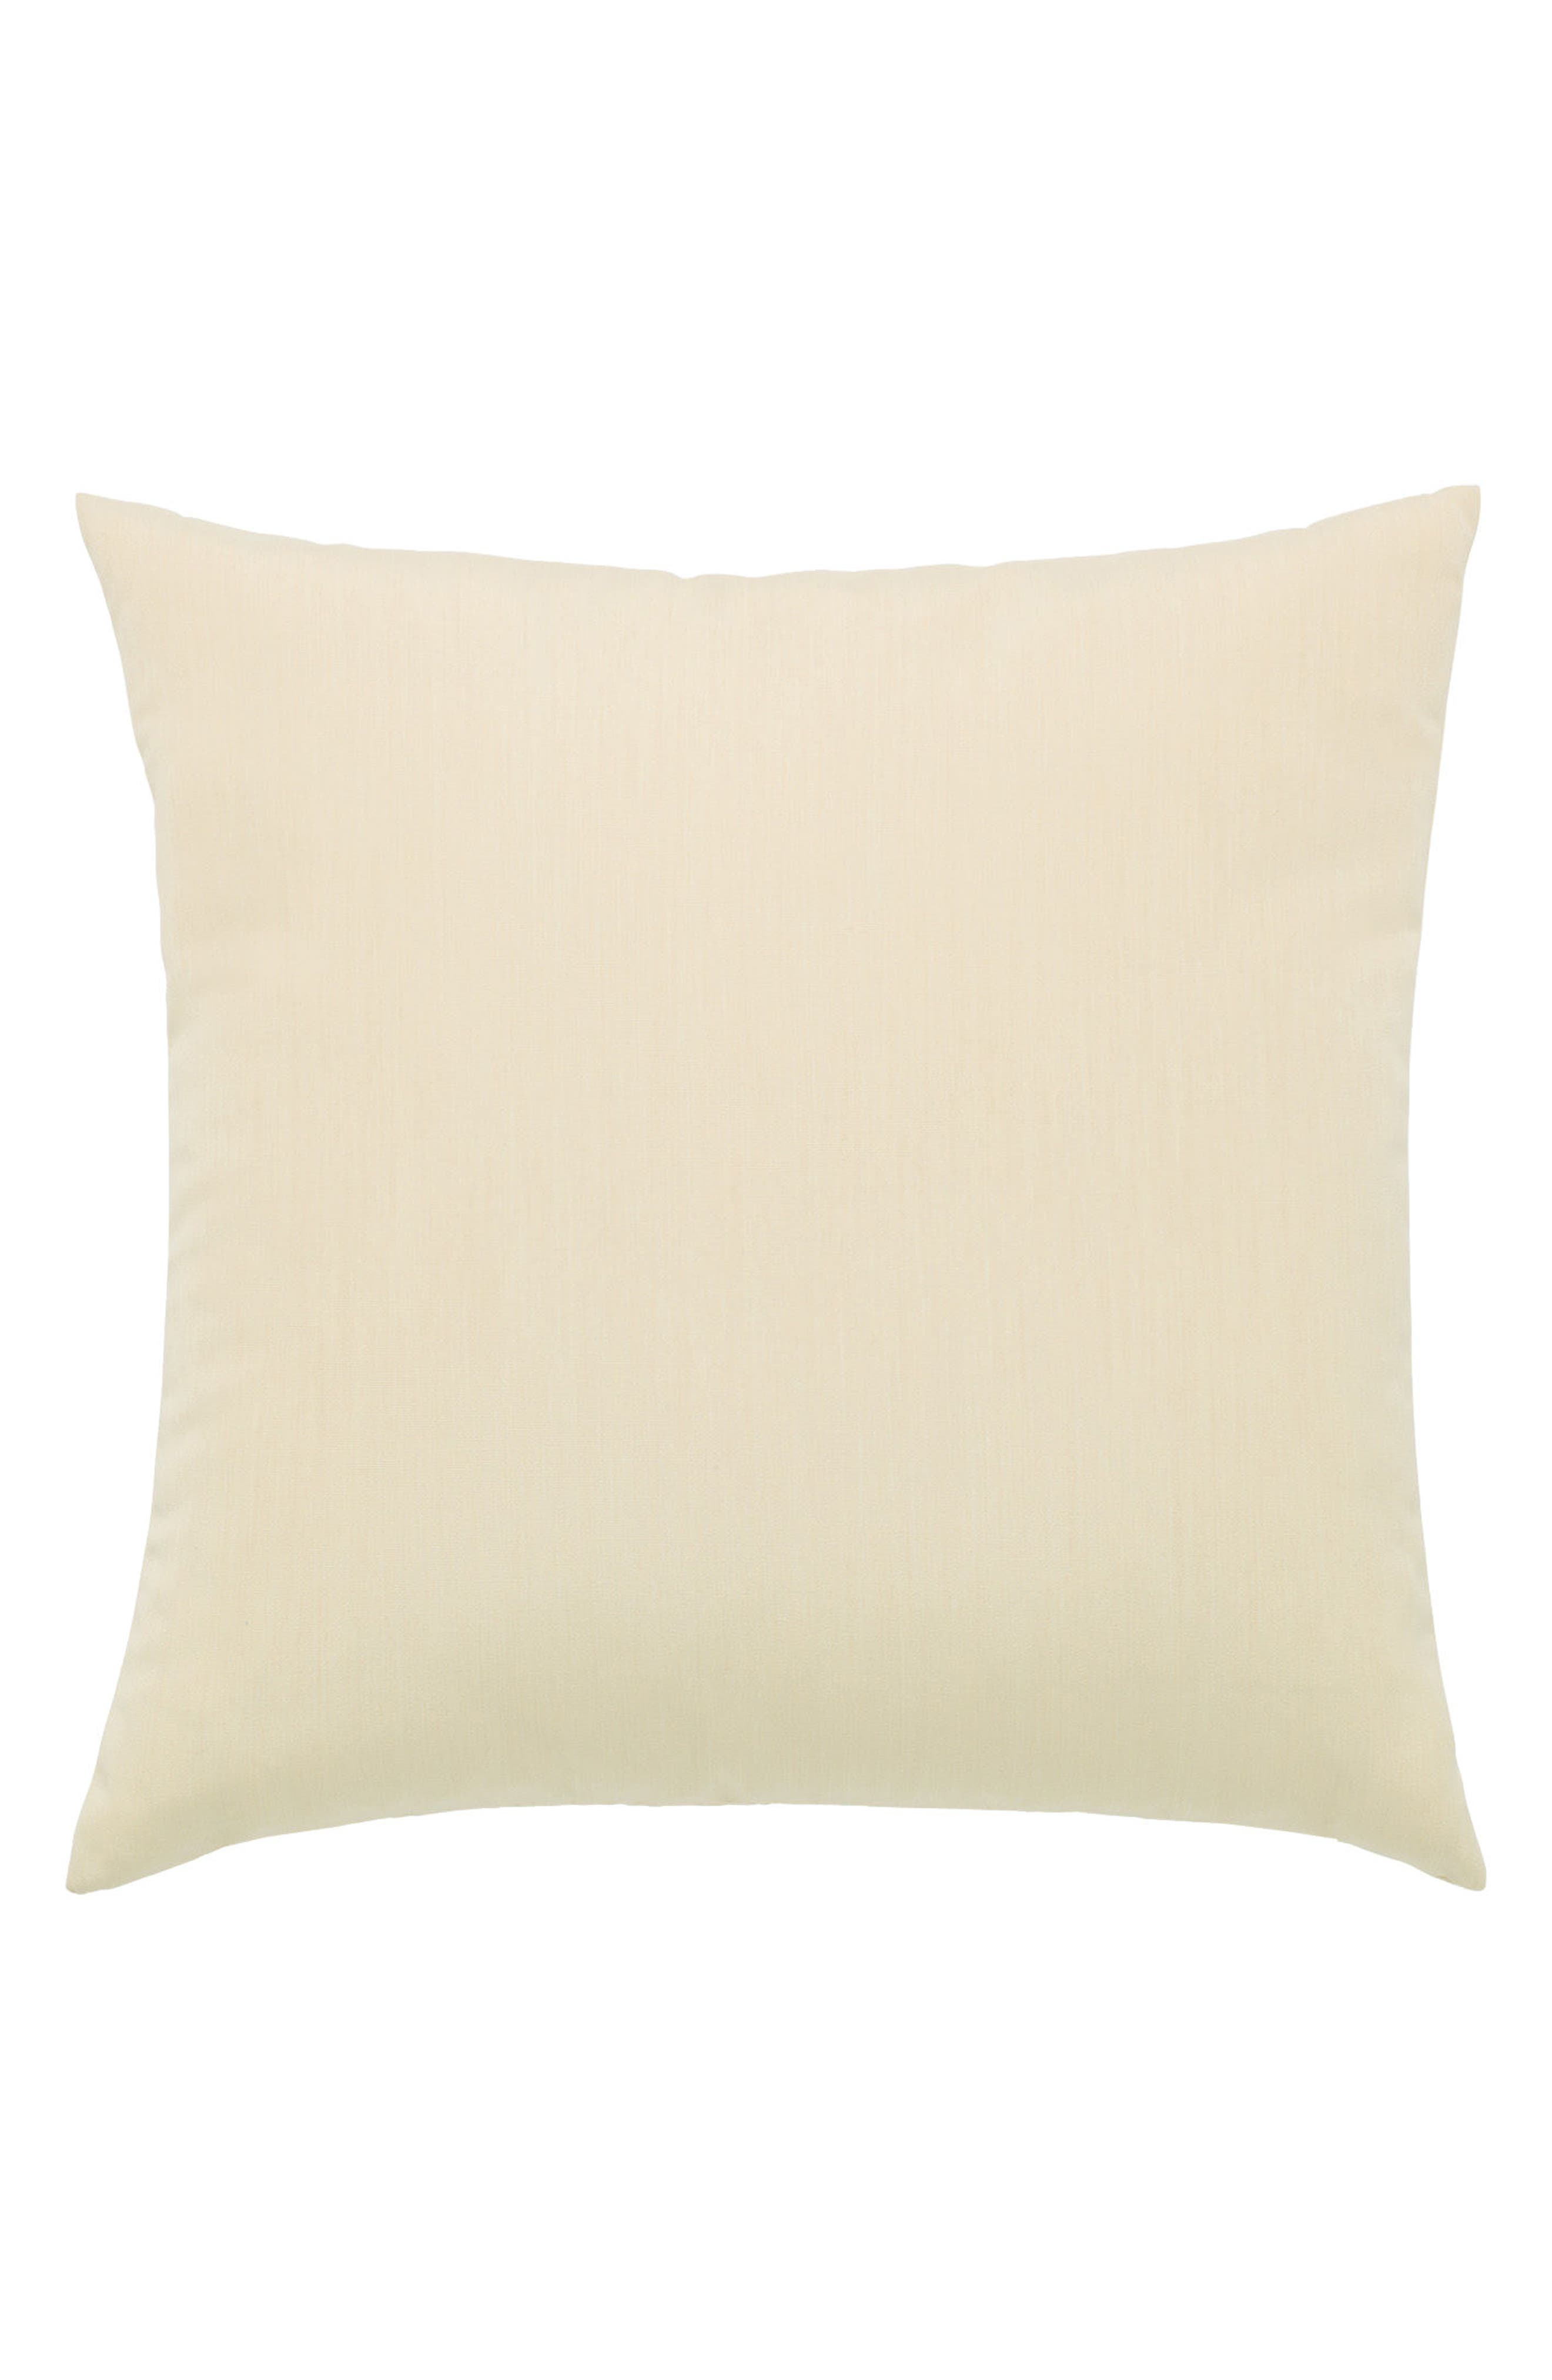 Modern Oval Candy Indoor/Outdoor Accent Pillow,                             Alternate thumbnail 2, color,                             650